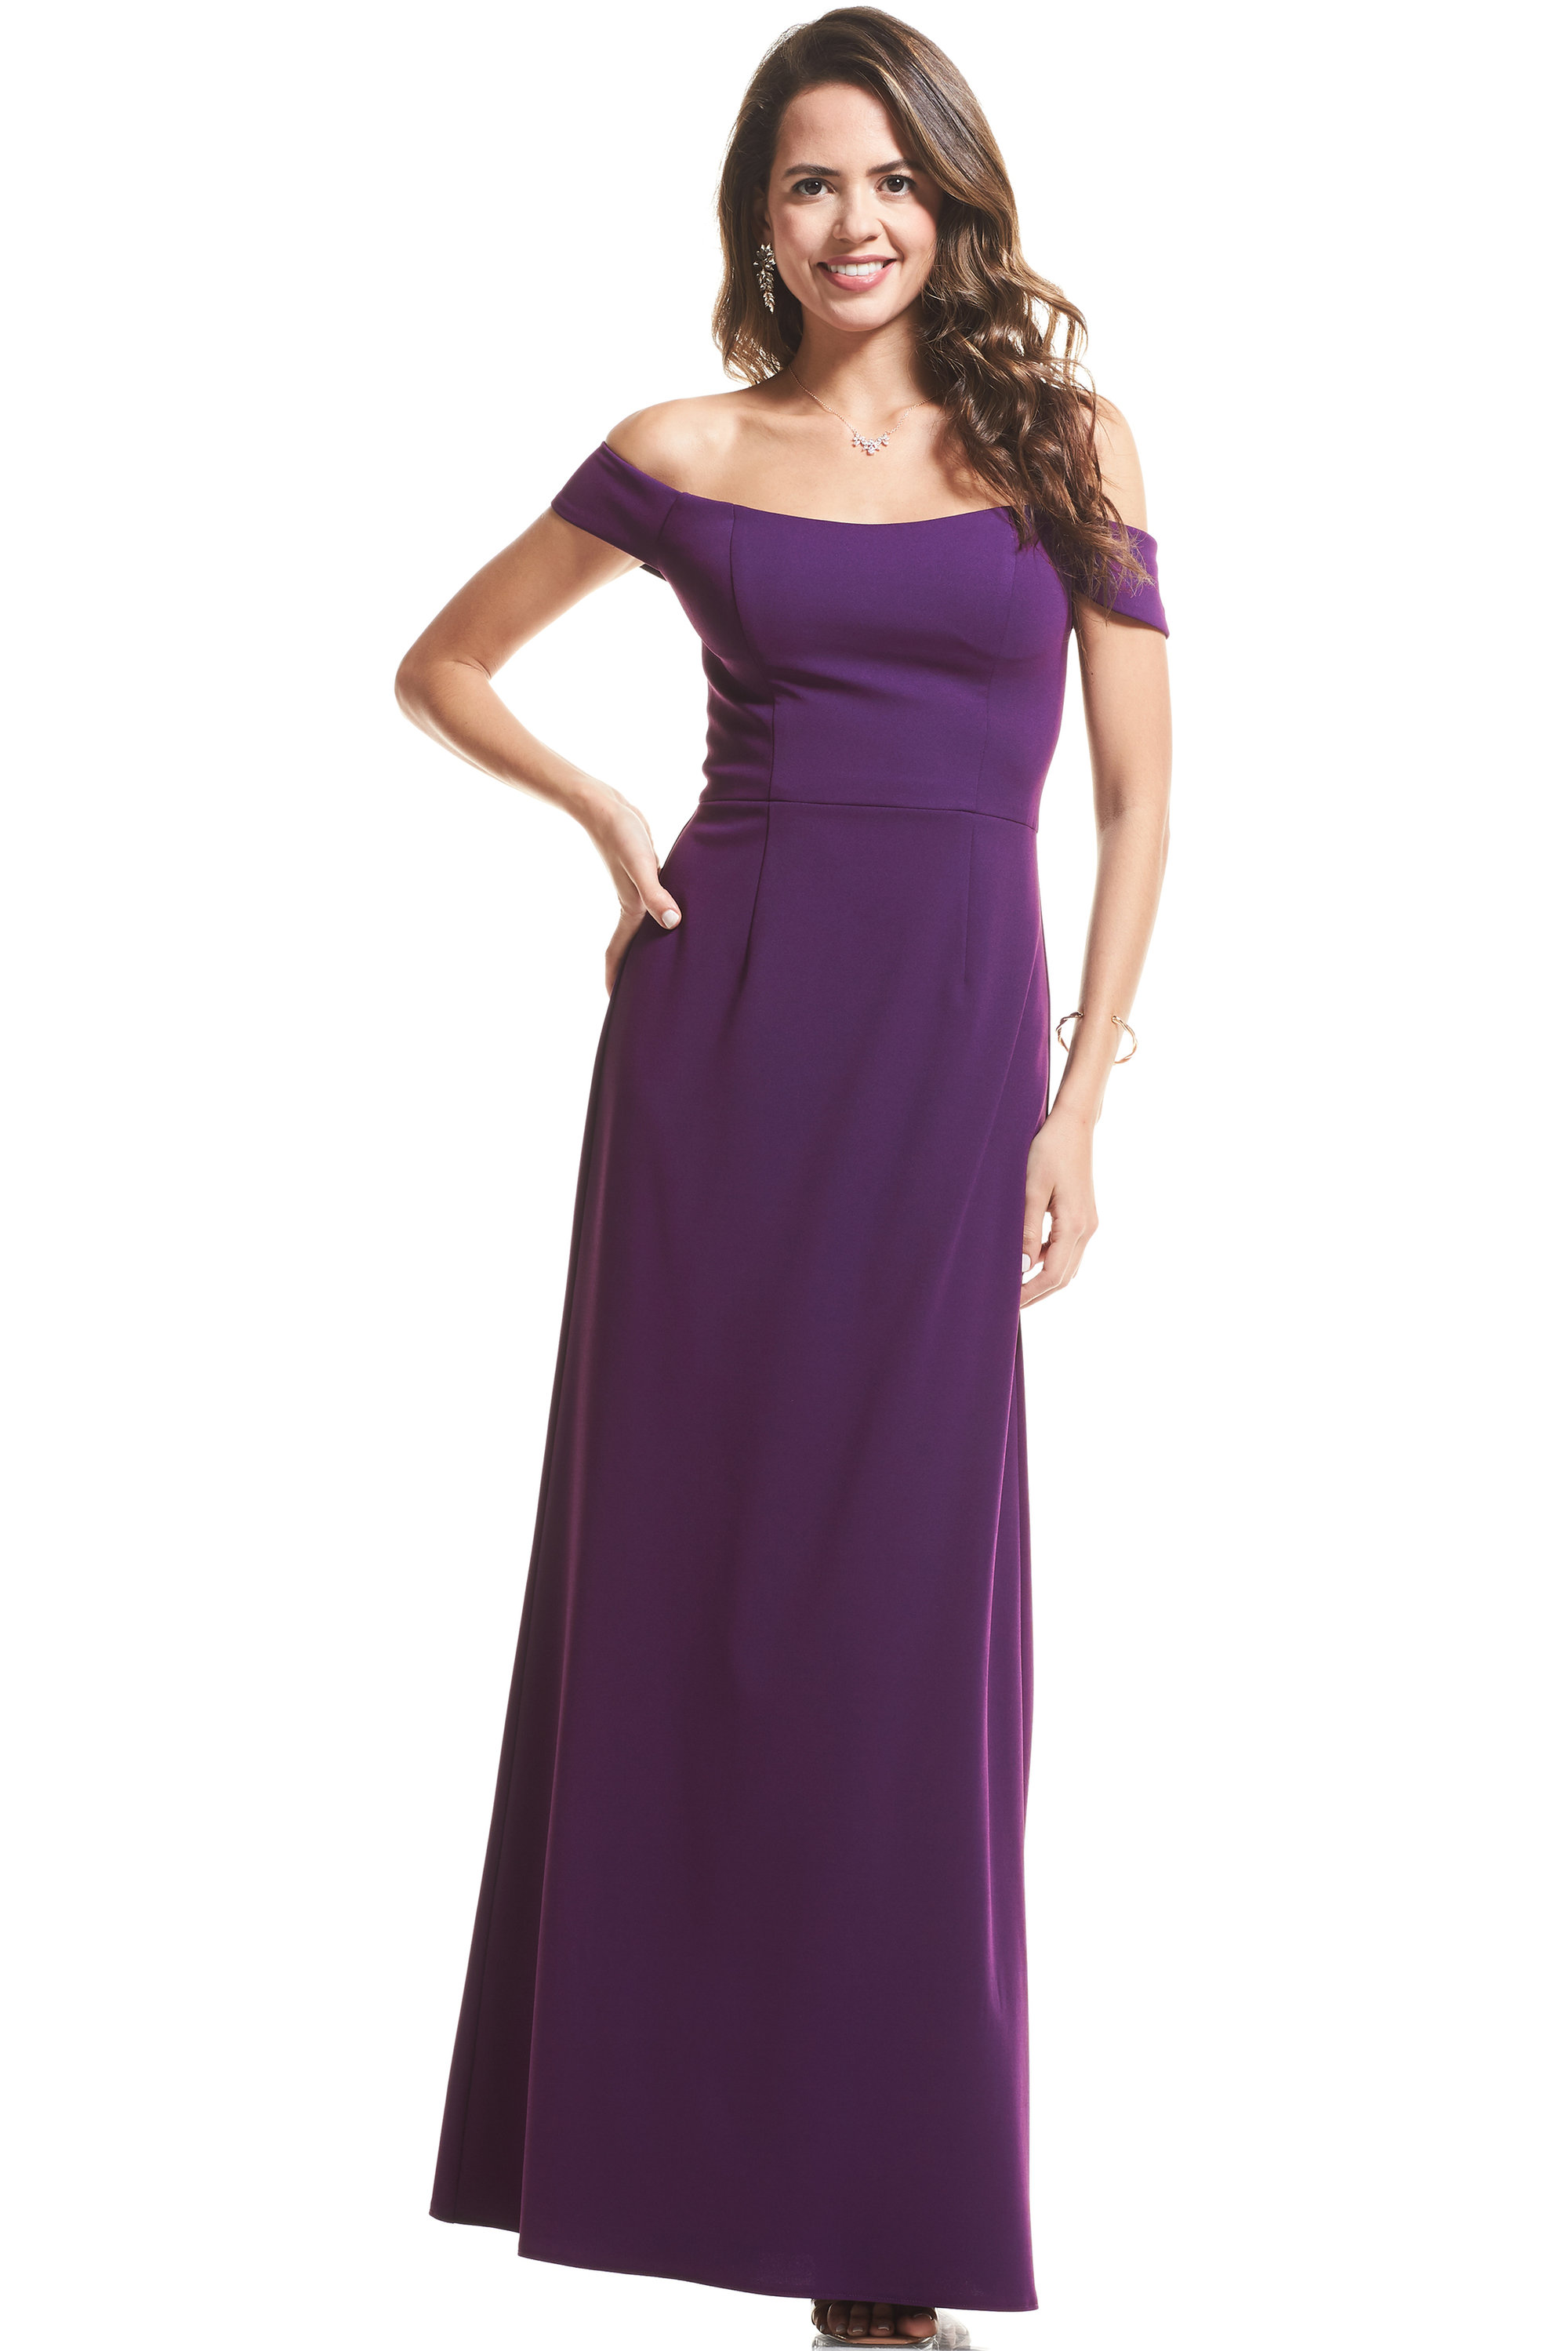 Bill Levkoff PALE BLUE Stretch Crepe Off The Shoulder Mermaid gown, $99.00 Lifestyle